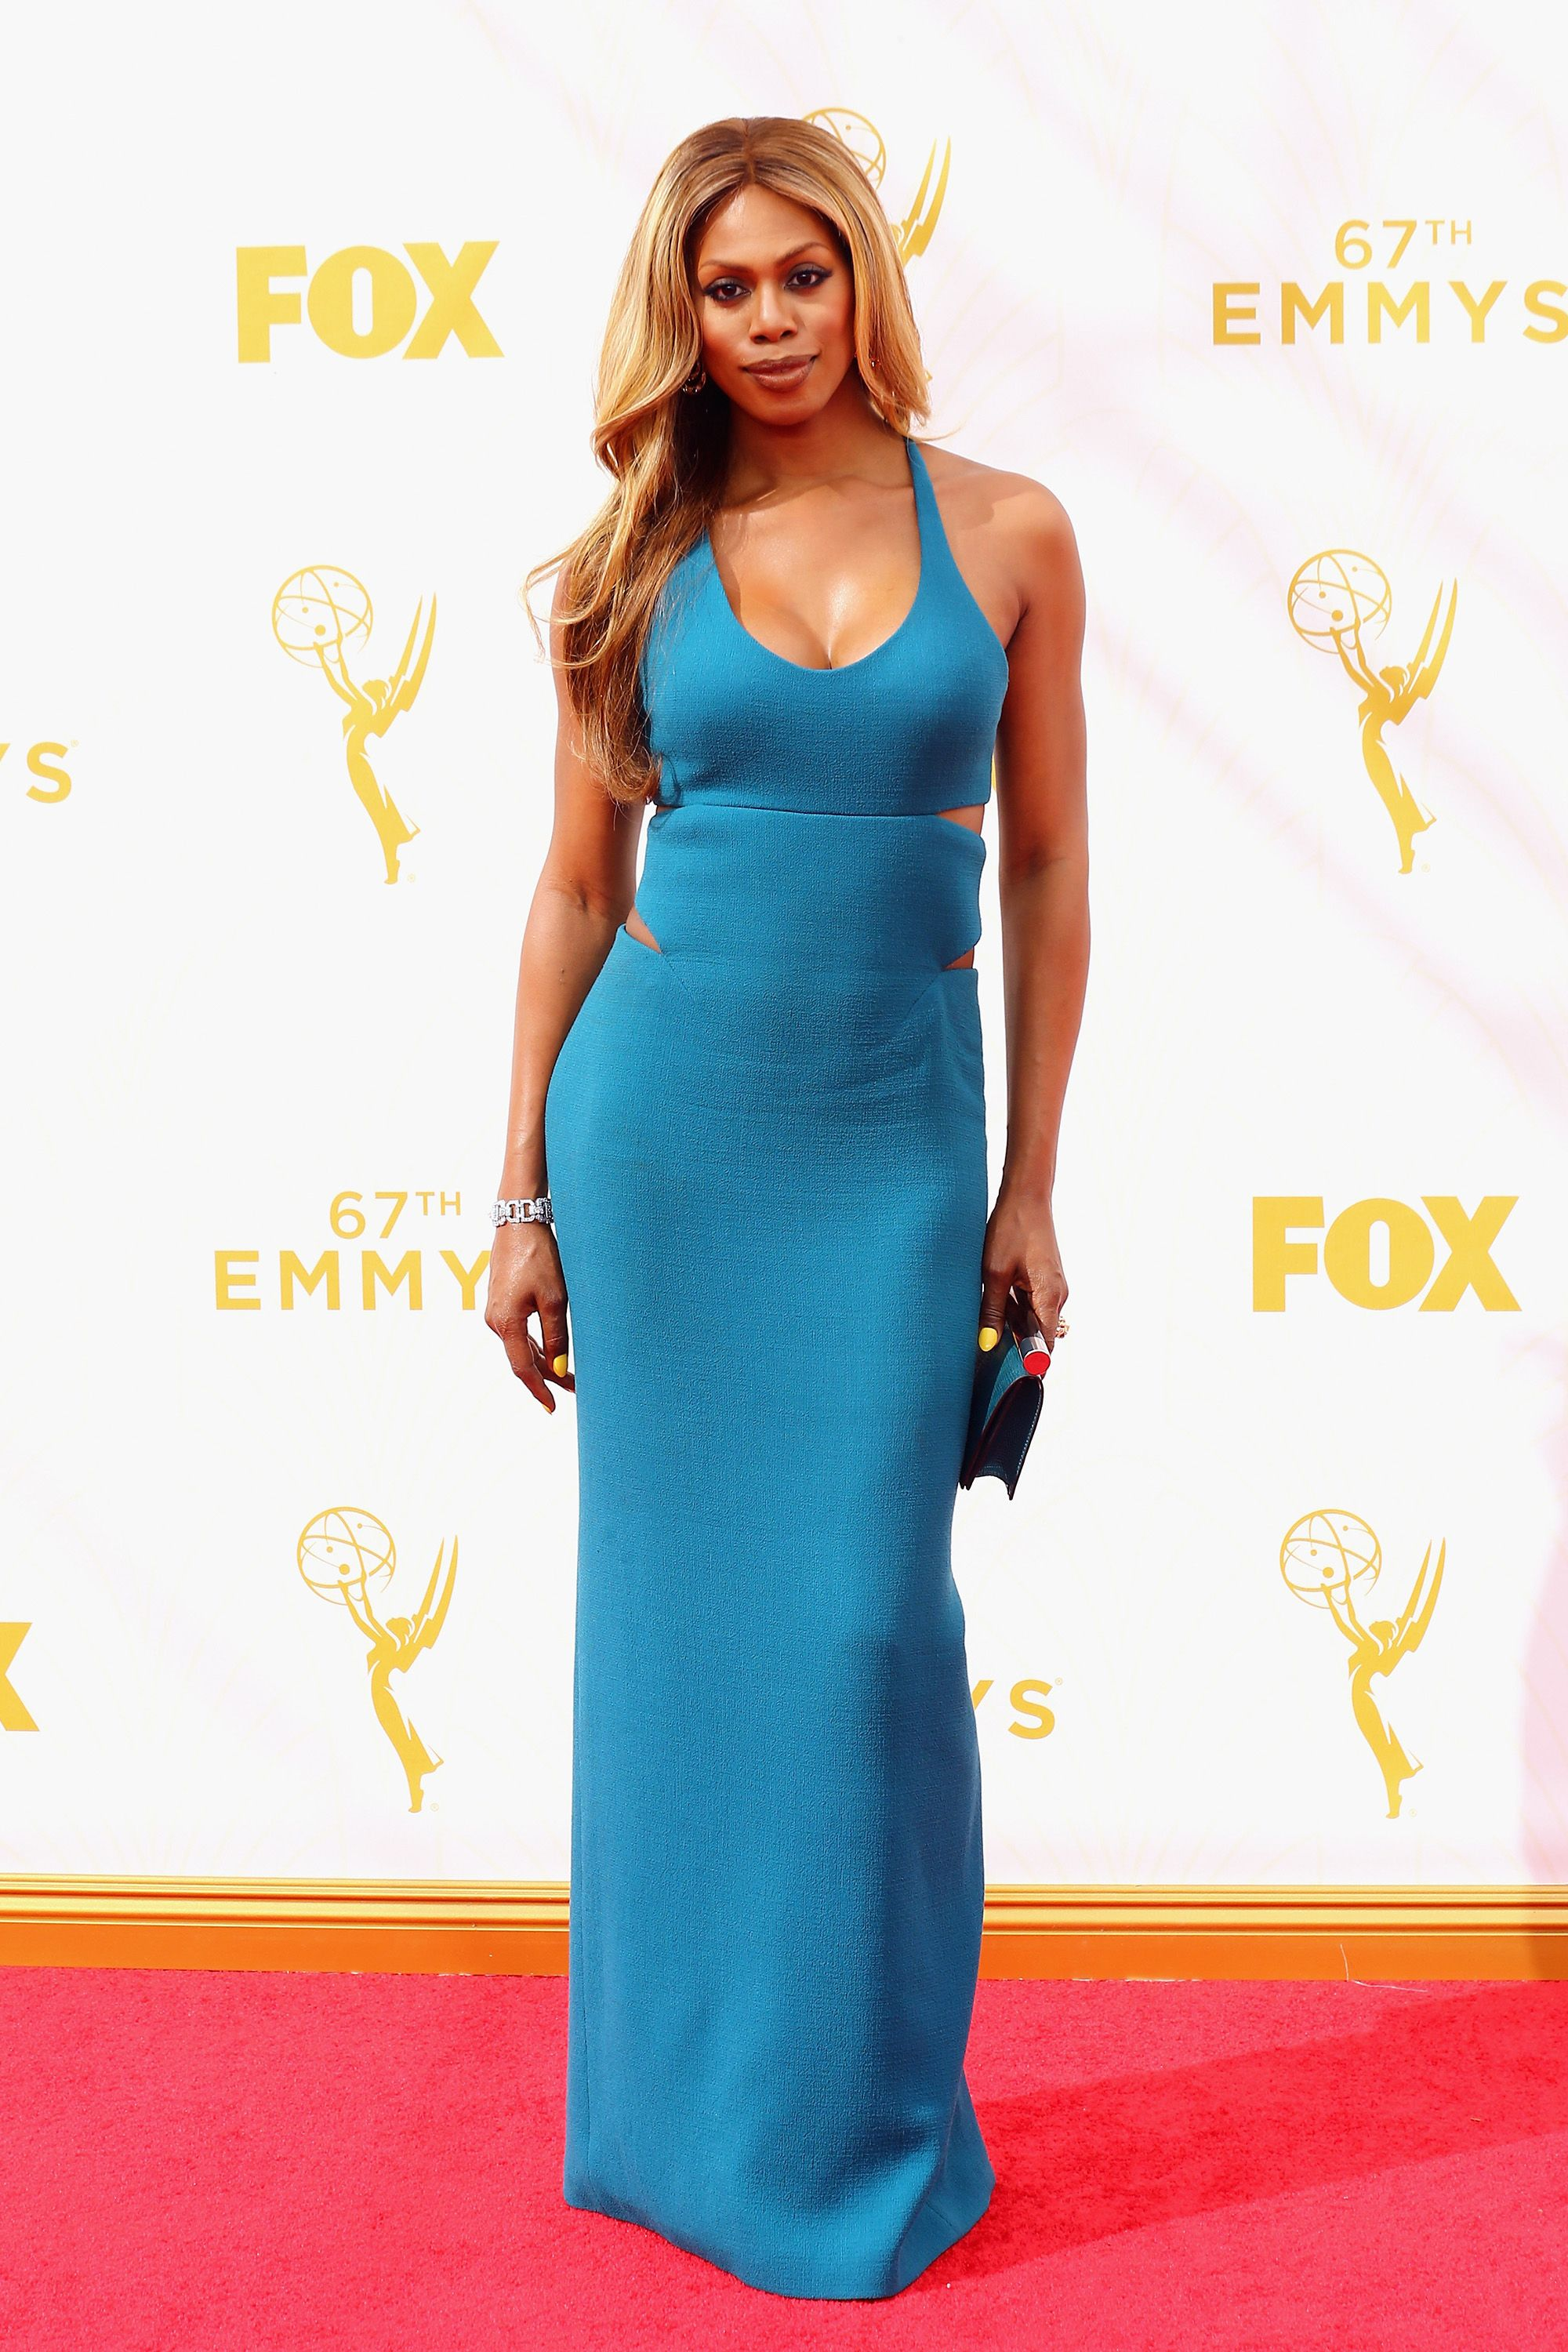 2015 Emmy Awards Red Carpet - Celebrity Looks from the 2015 Emmys